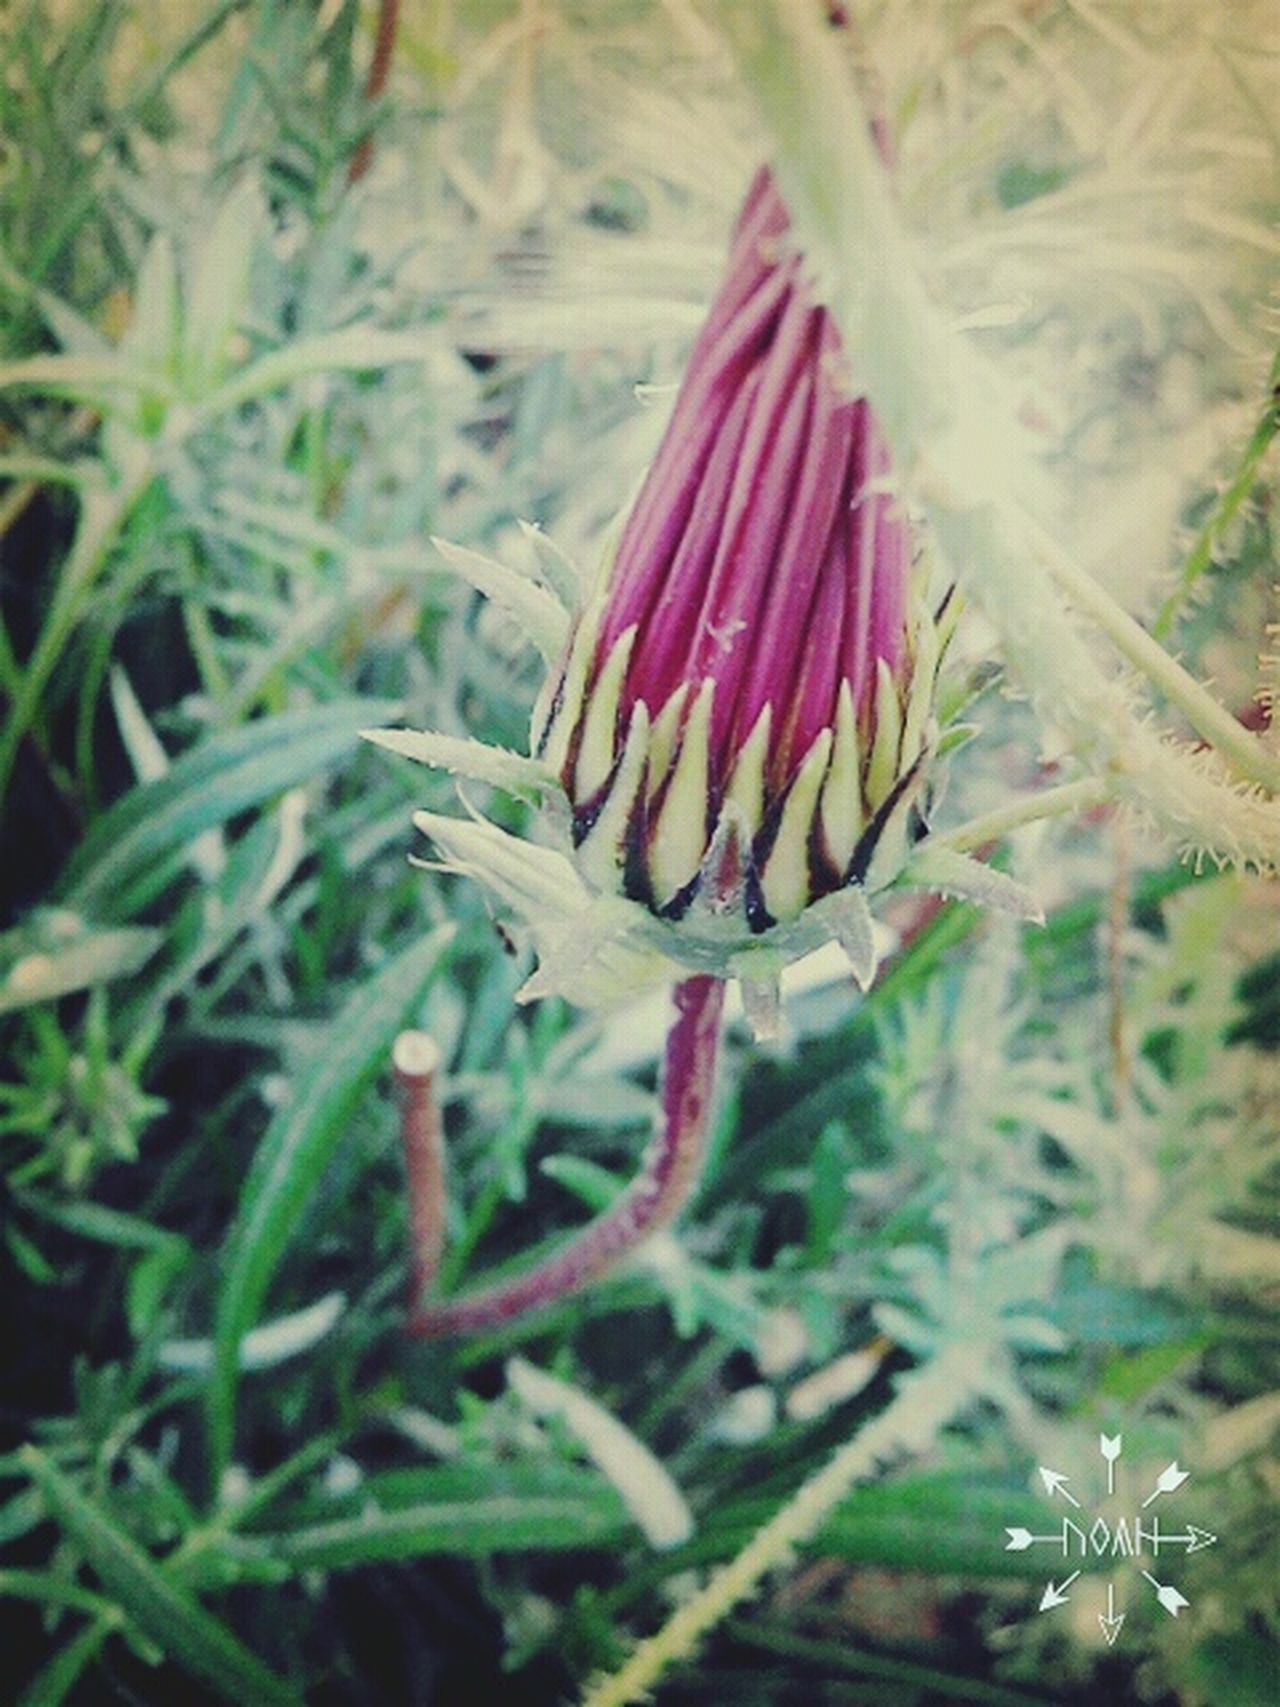 Beauty In Nature Nature Flower Fragility Plant Natural Beauty Lovelovelove Outdoors Plants 🌱 Beautiful Nature Naturelovers Details Textures And Shapes KissMe Violeta Mobile Photography Beautiful Day Lines, Shapes And Curves Freshness